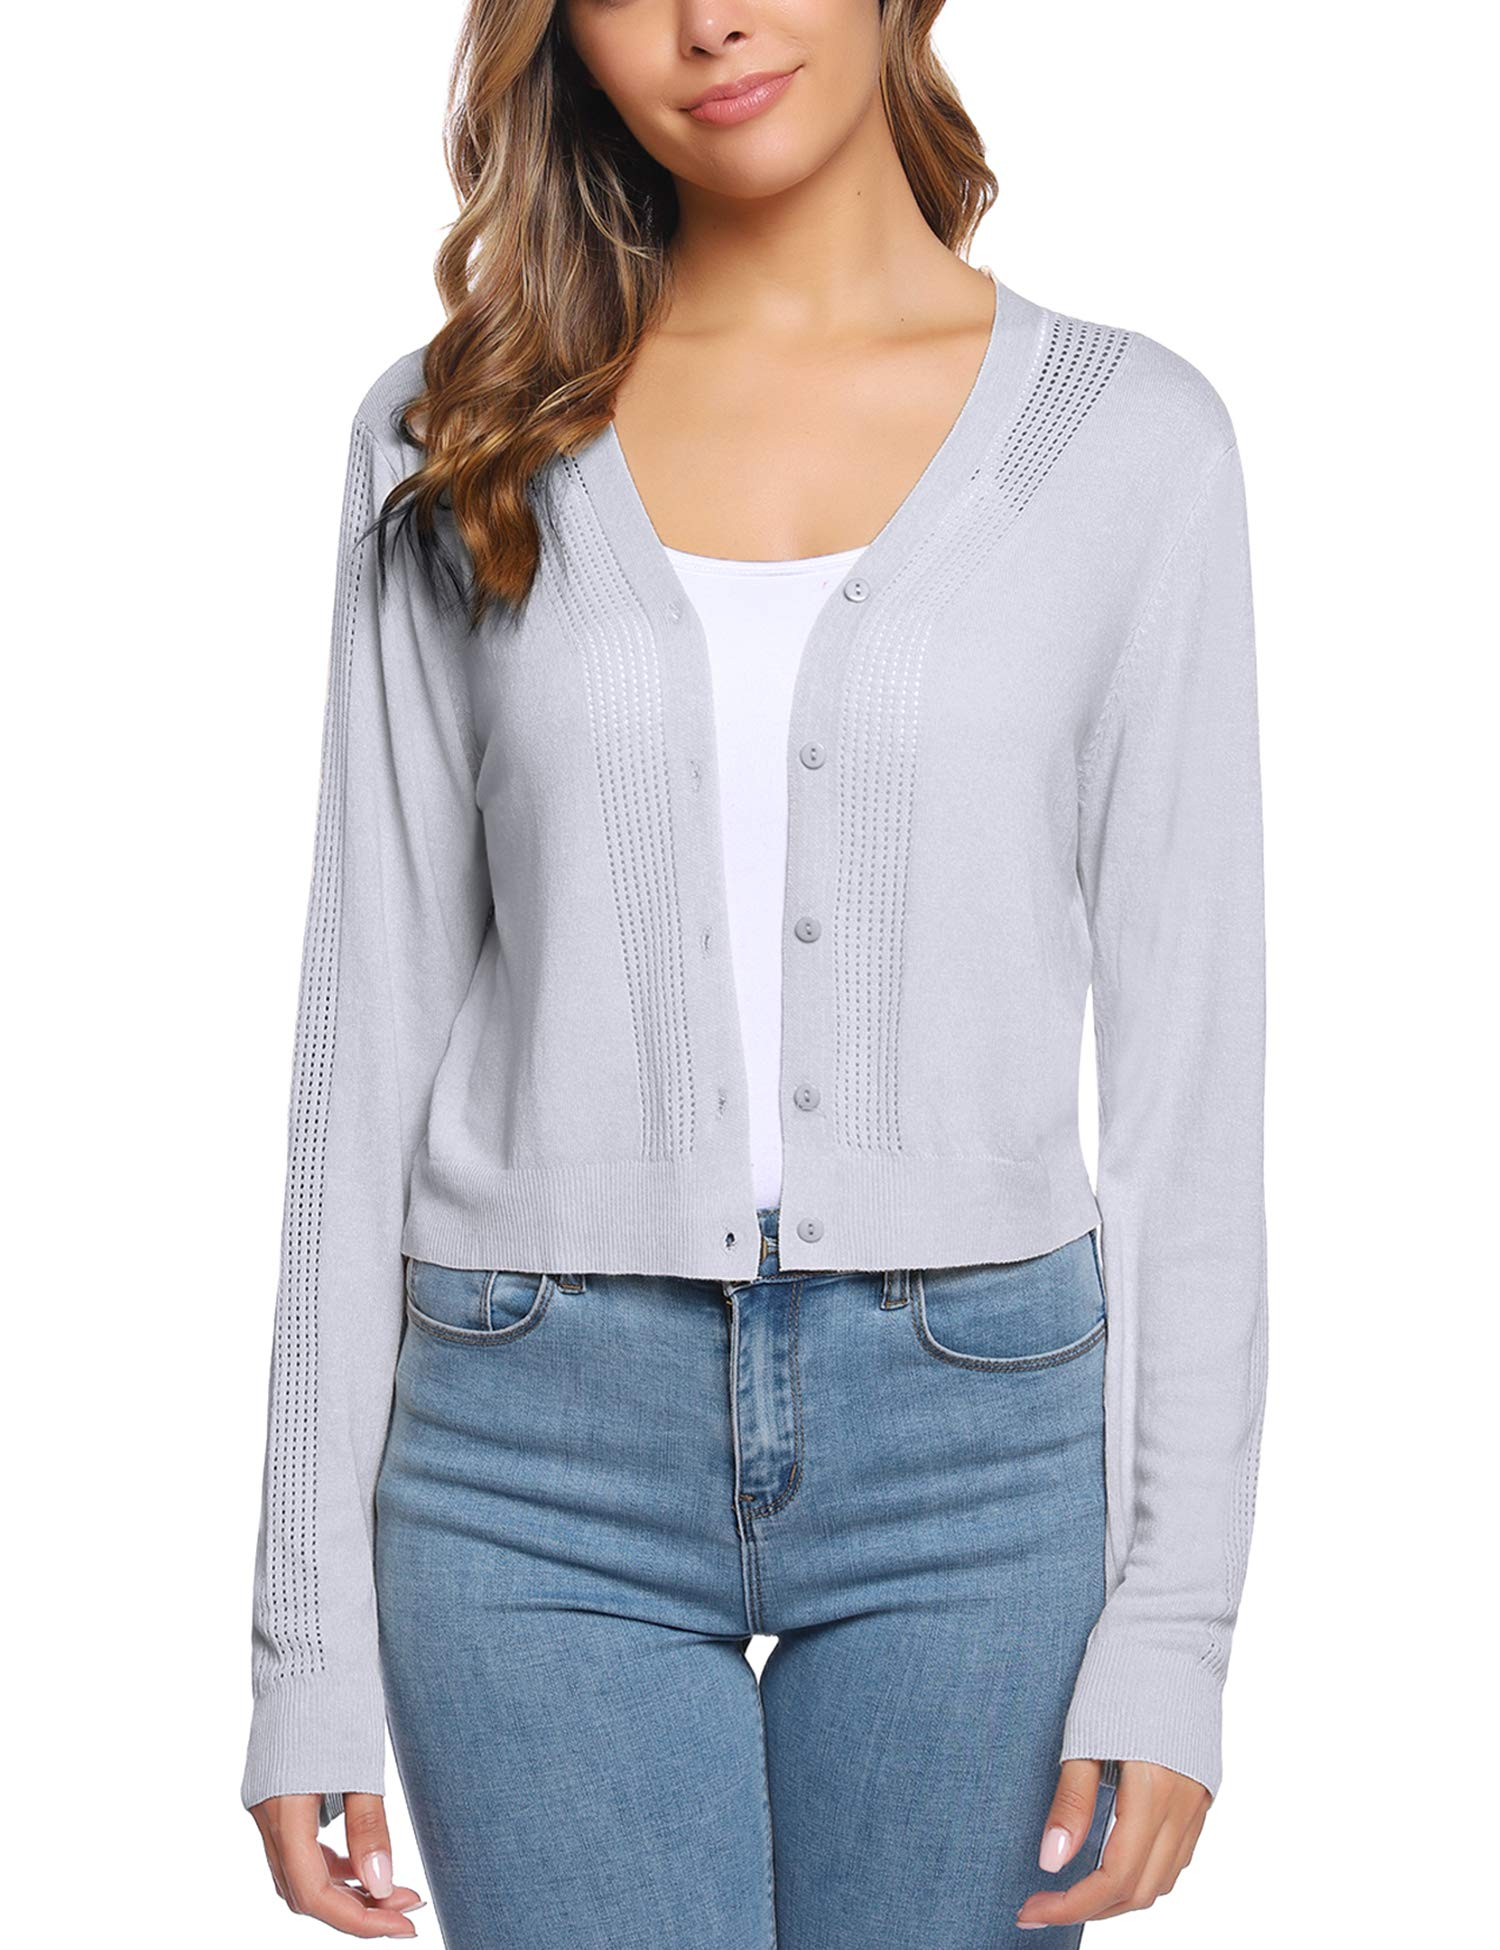 iClosam Women Cropped Long Sleeve Bolero Shrug Button Down Cardigan Sweater